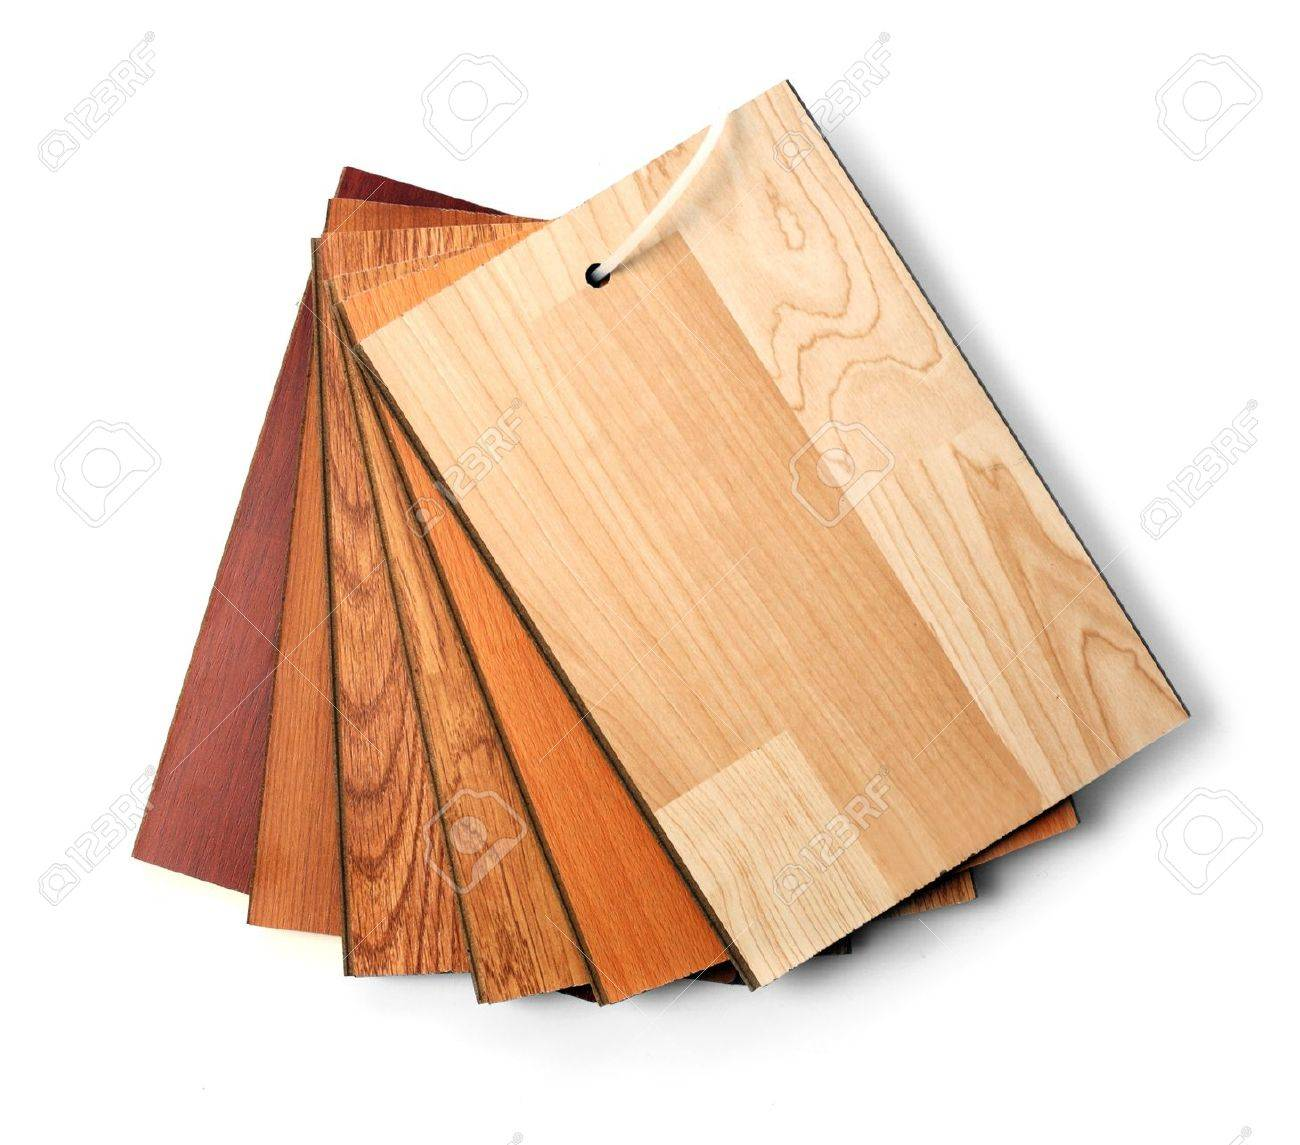 wood floor samples: Sample pack of wooden flooring laminate isolated on  white - Wood Floor Samples Stock Photos Images. Royalty Free Wood Floor